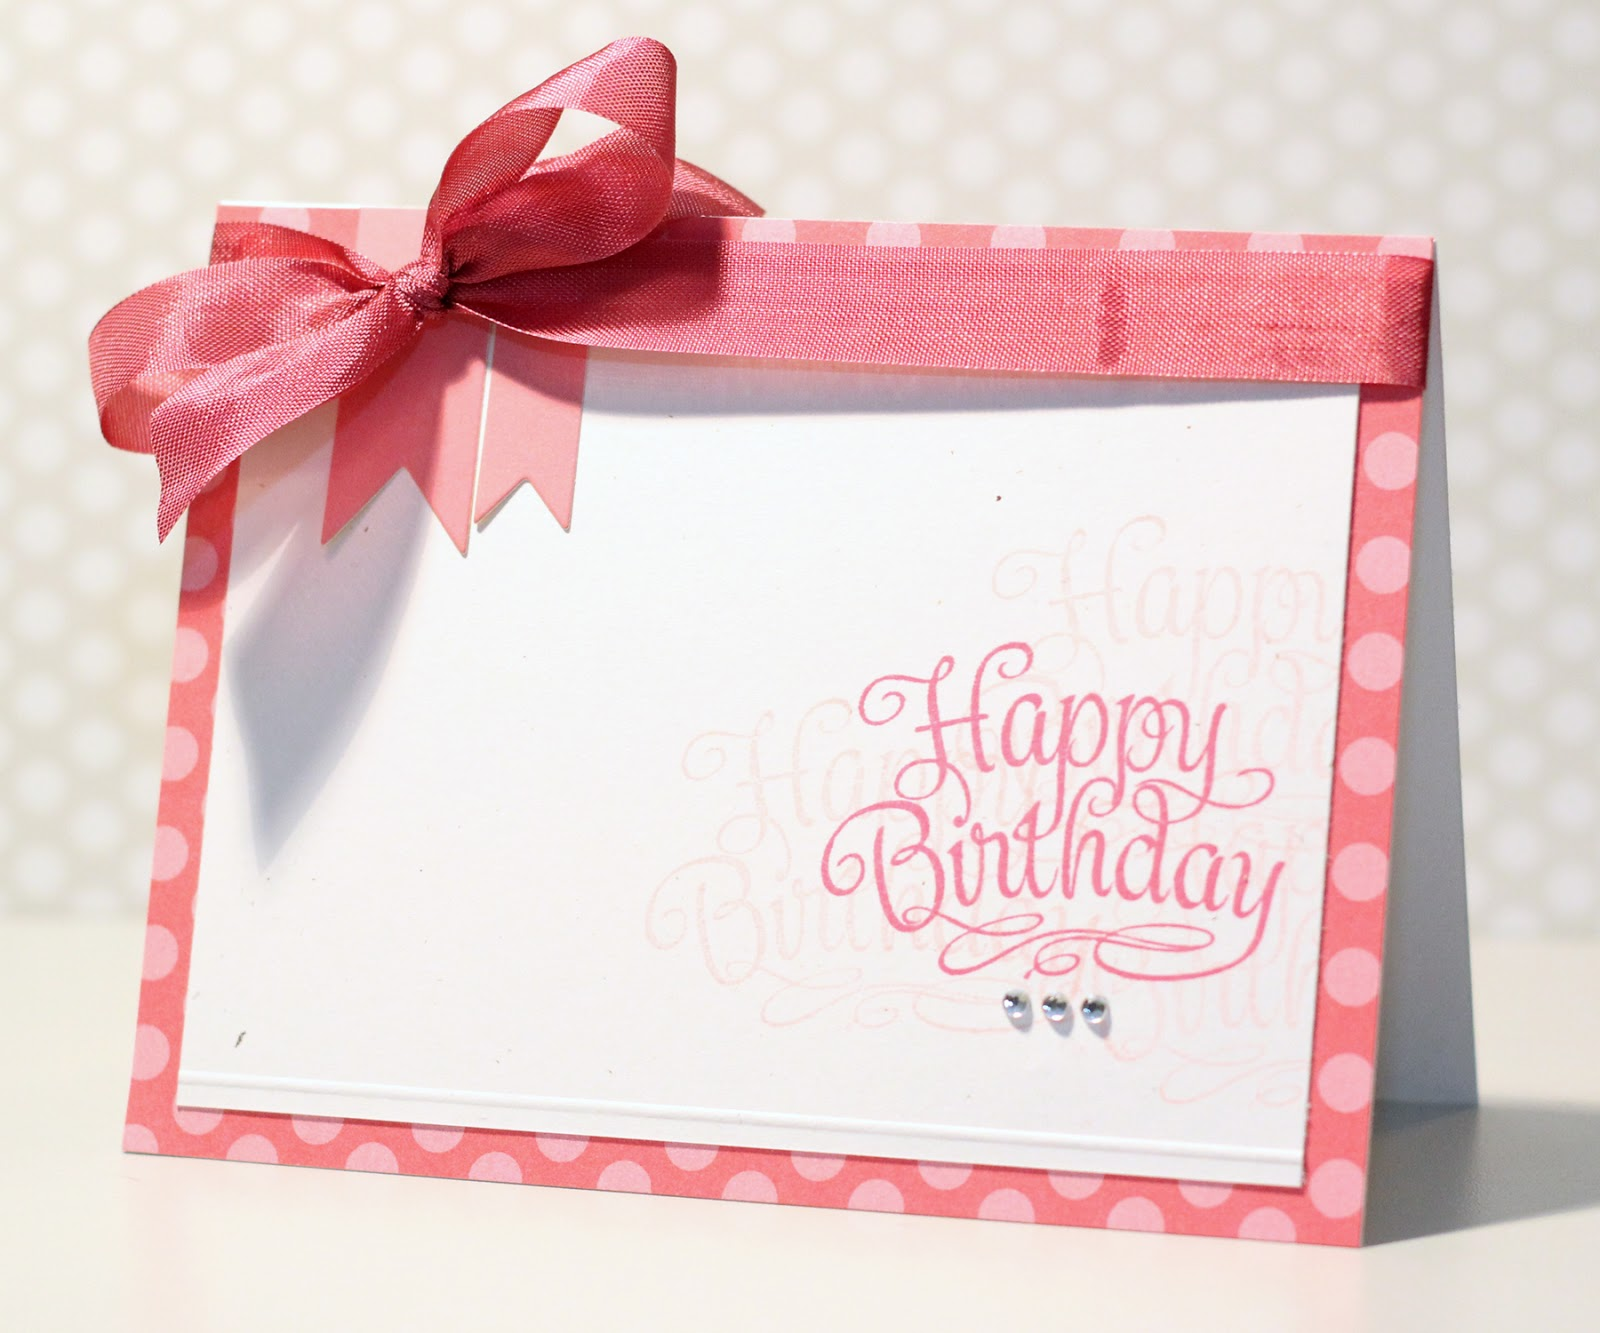 Happy Birthday Card With Name And Photo Editor Erin Taylor Designs Great Impressions Stamps Blingy